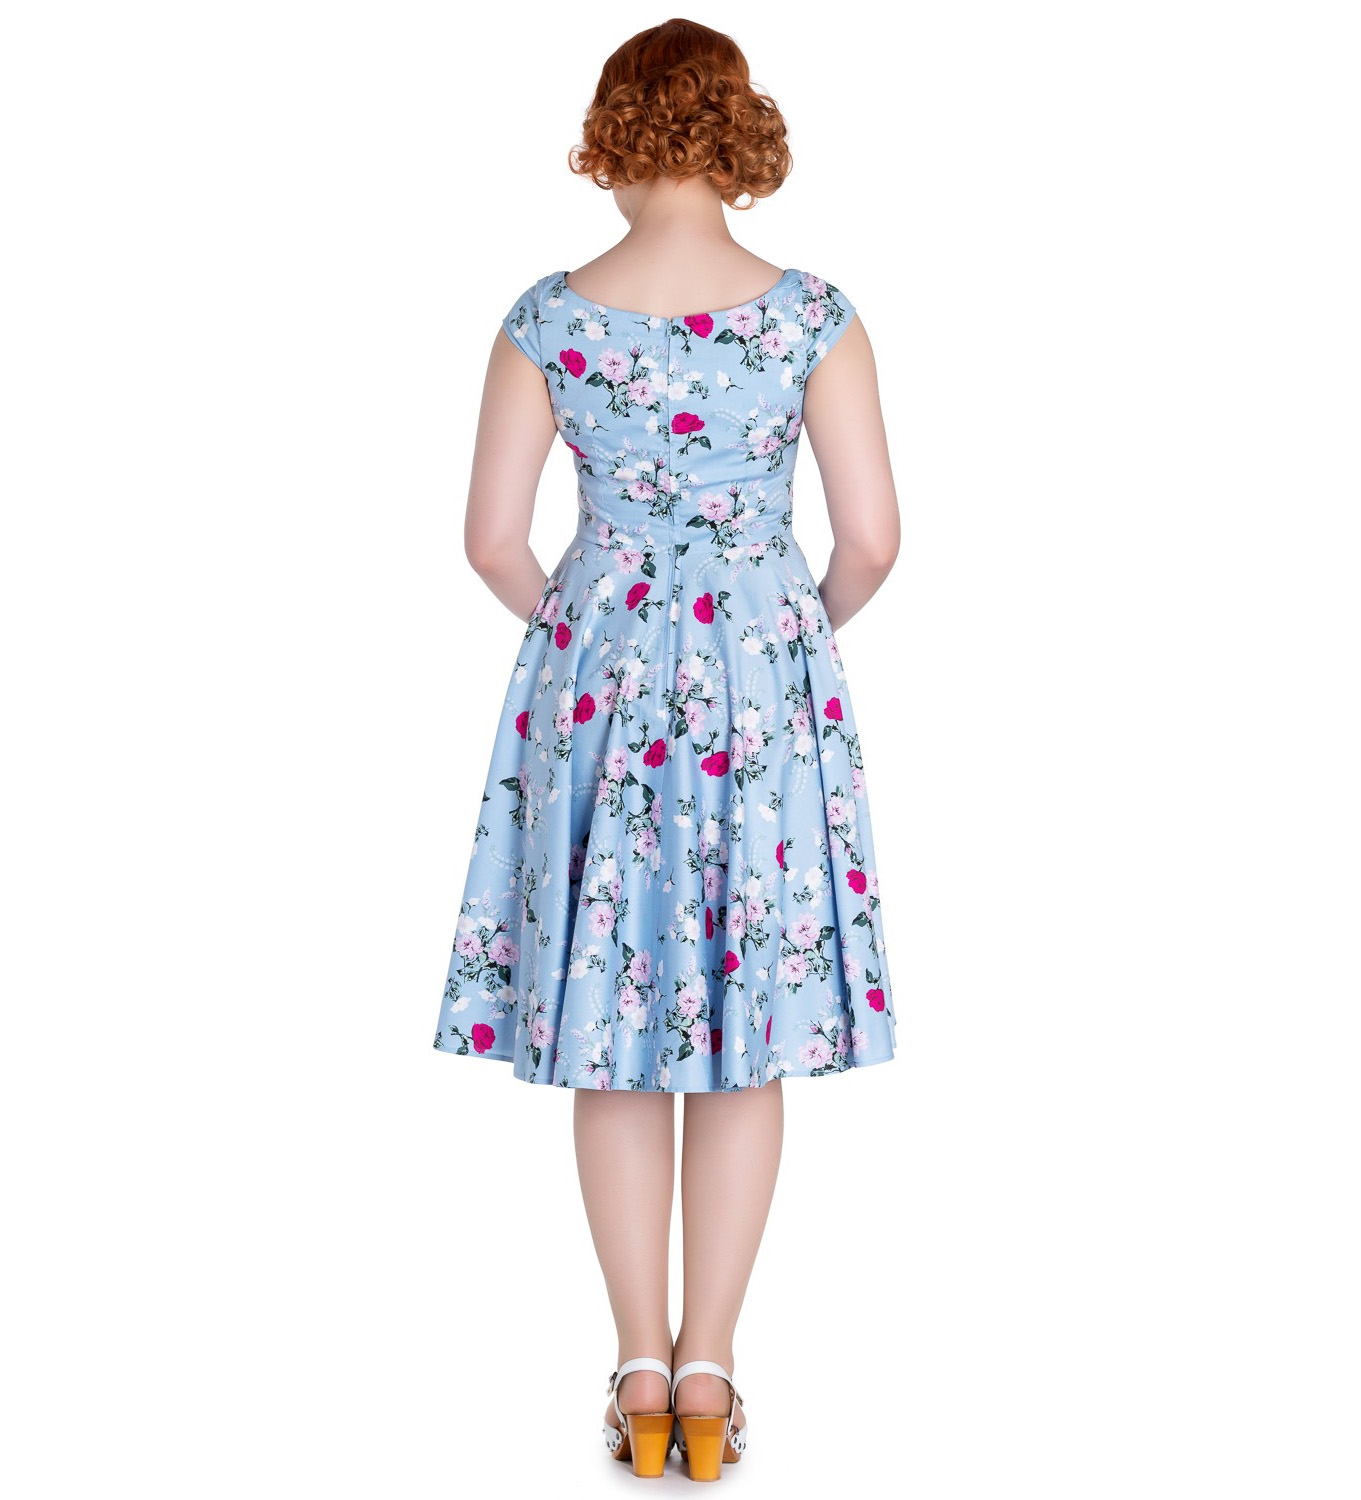 Hell-Bunny-50s-Dress-Floral-BELINDA-Rockabilly-Pin-Up-Vintage-Blue thumbnail 9